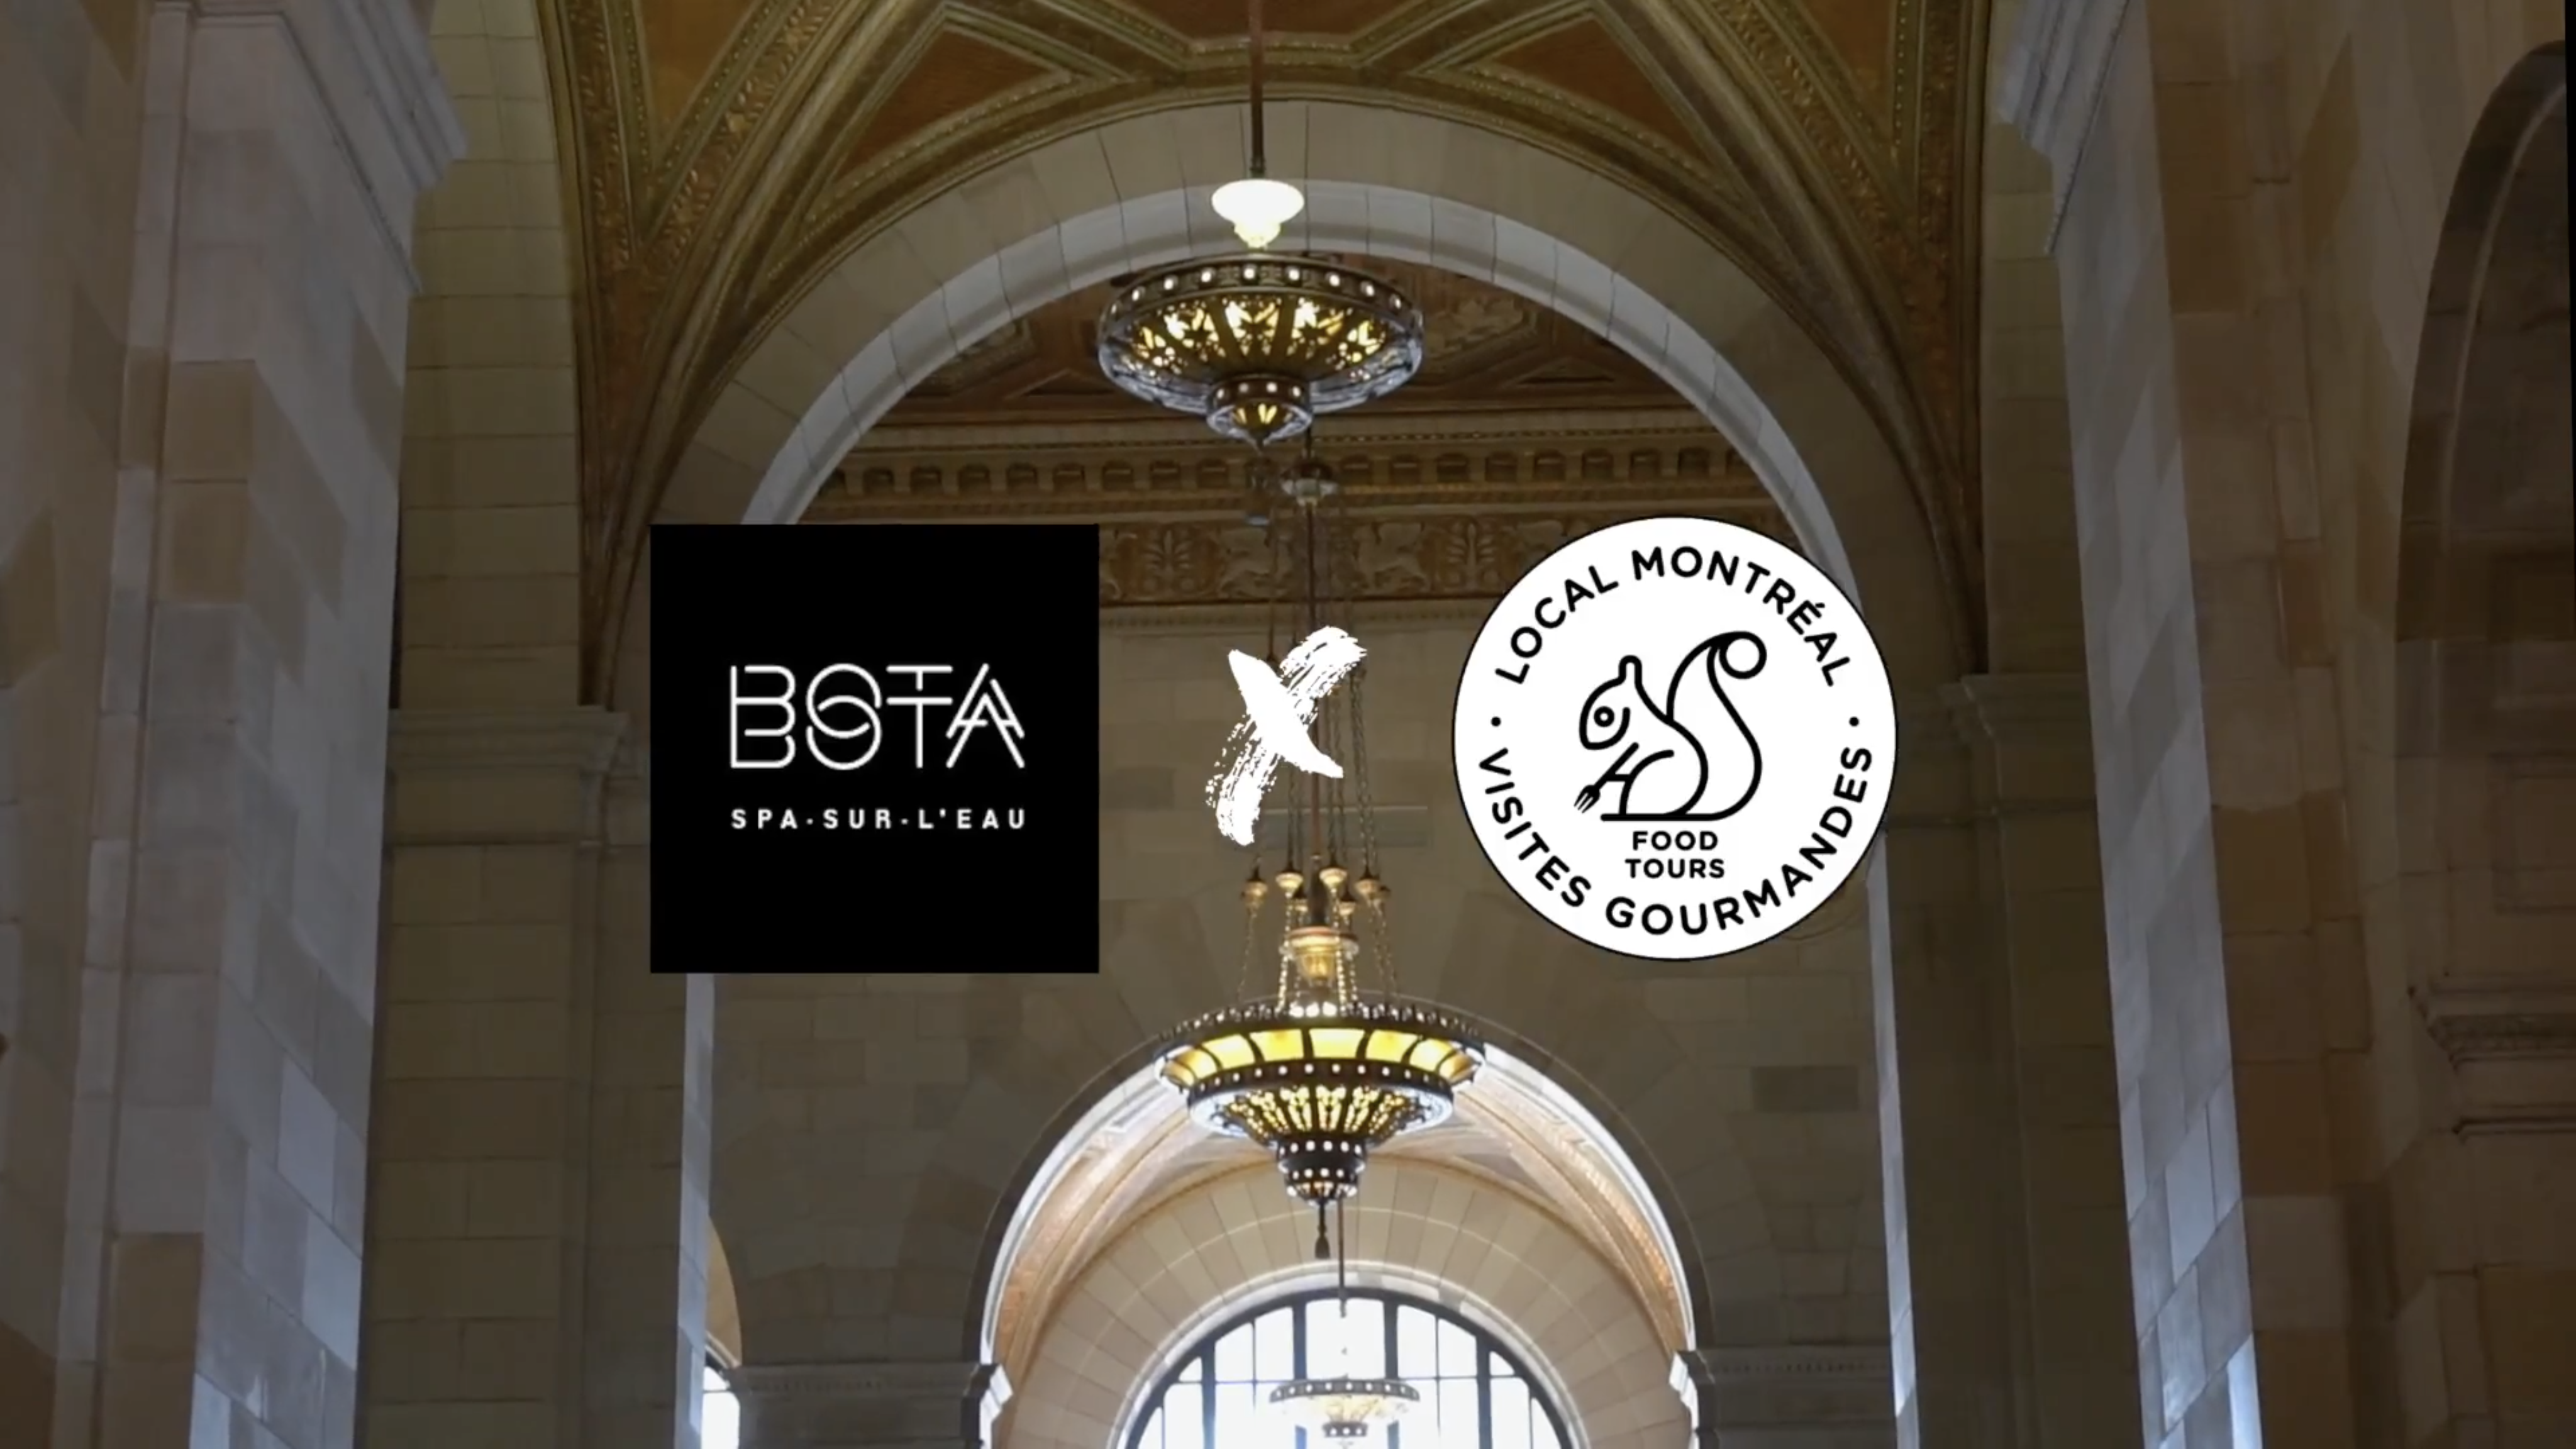 LOCAL MONTREAL TOURS X BOTA BOTA